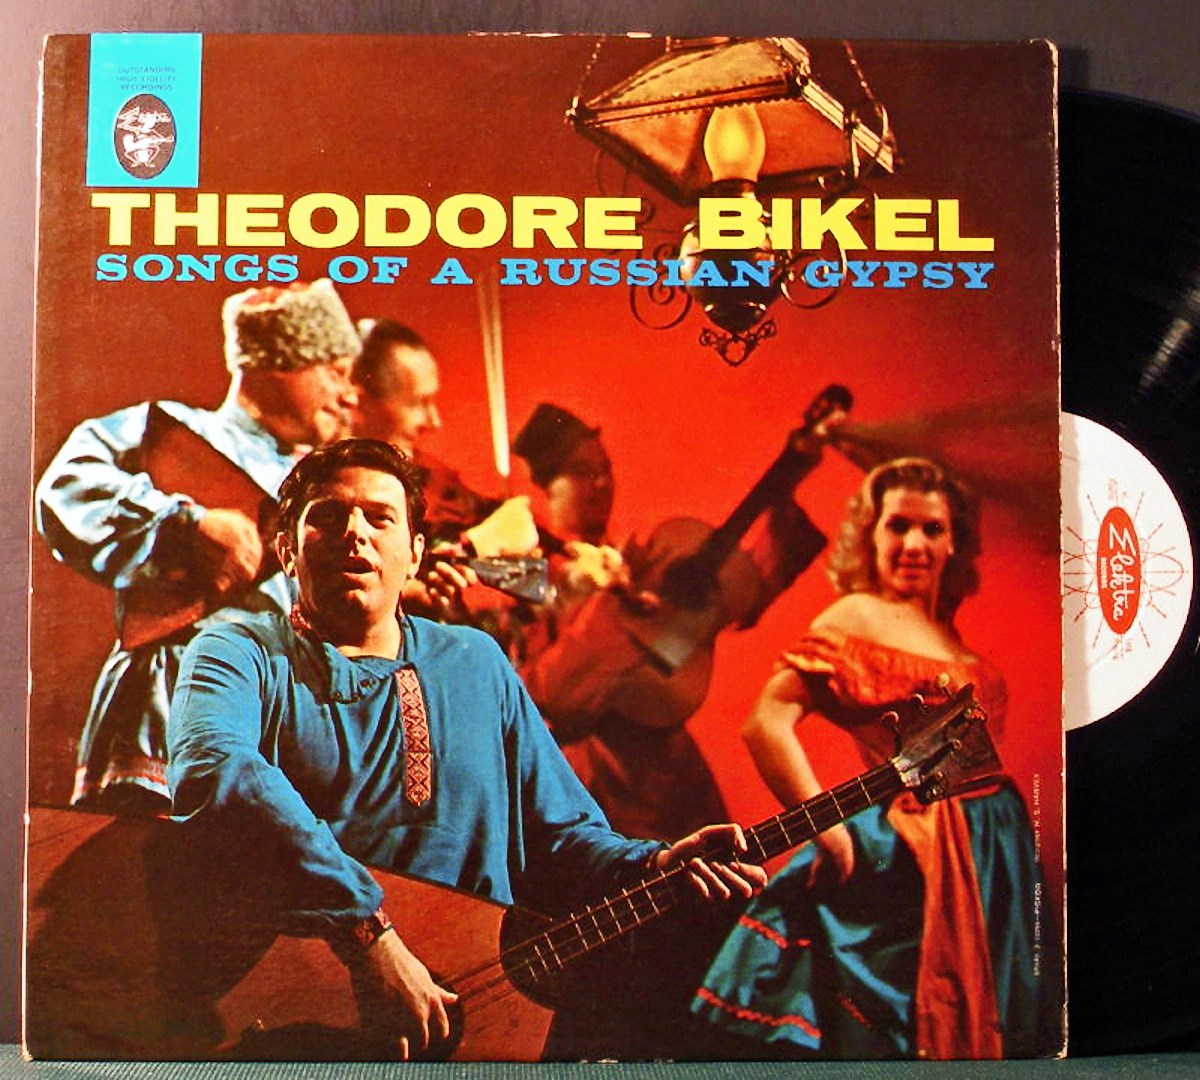 00 theodore bikel. songs of a russian gypsy. 1958